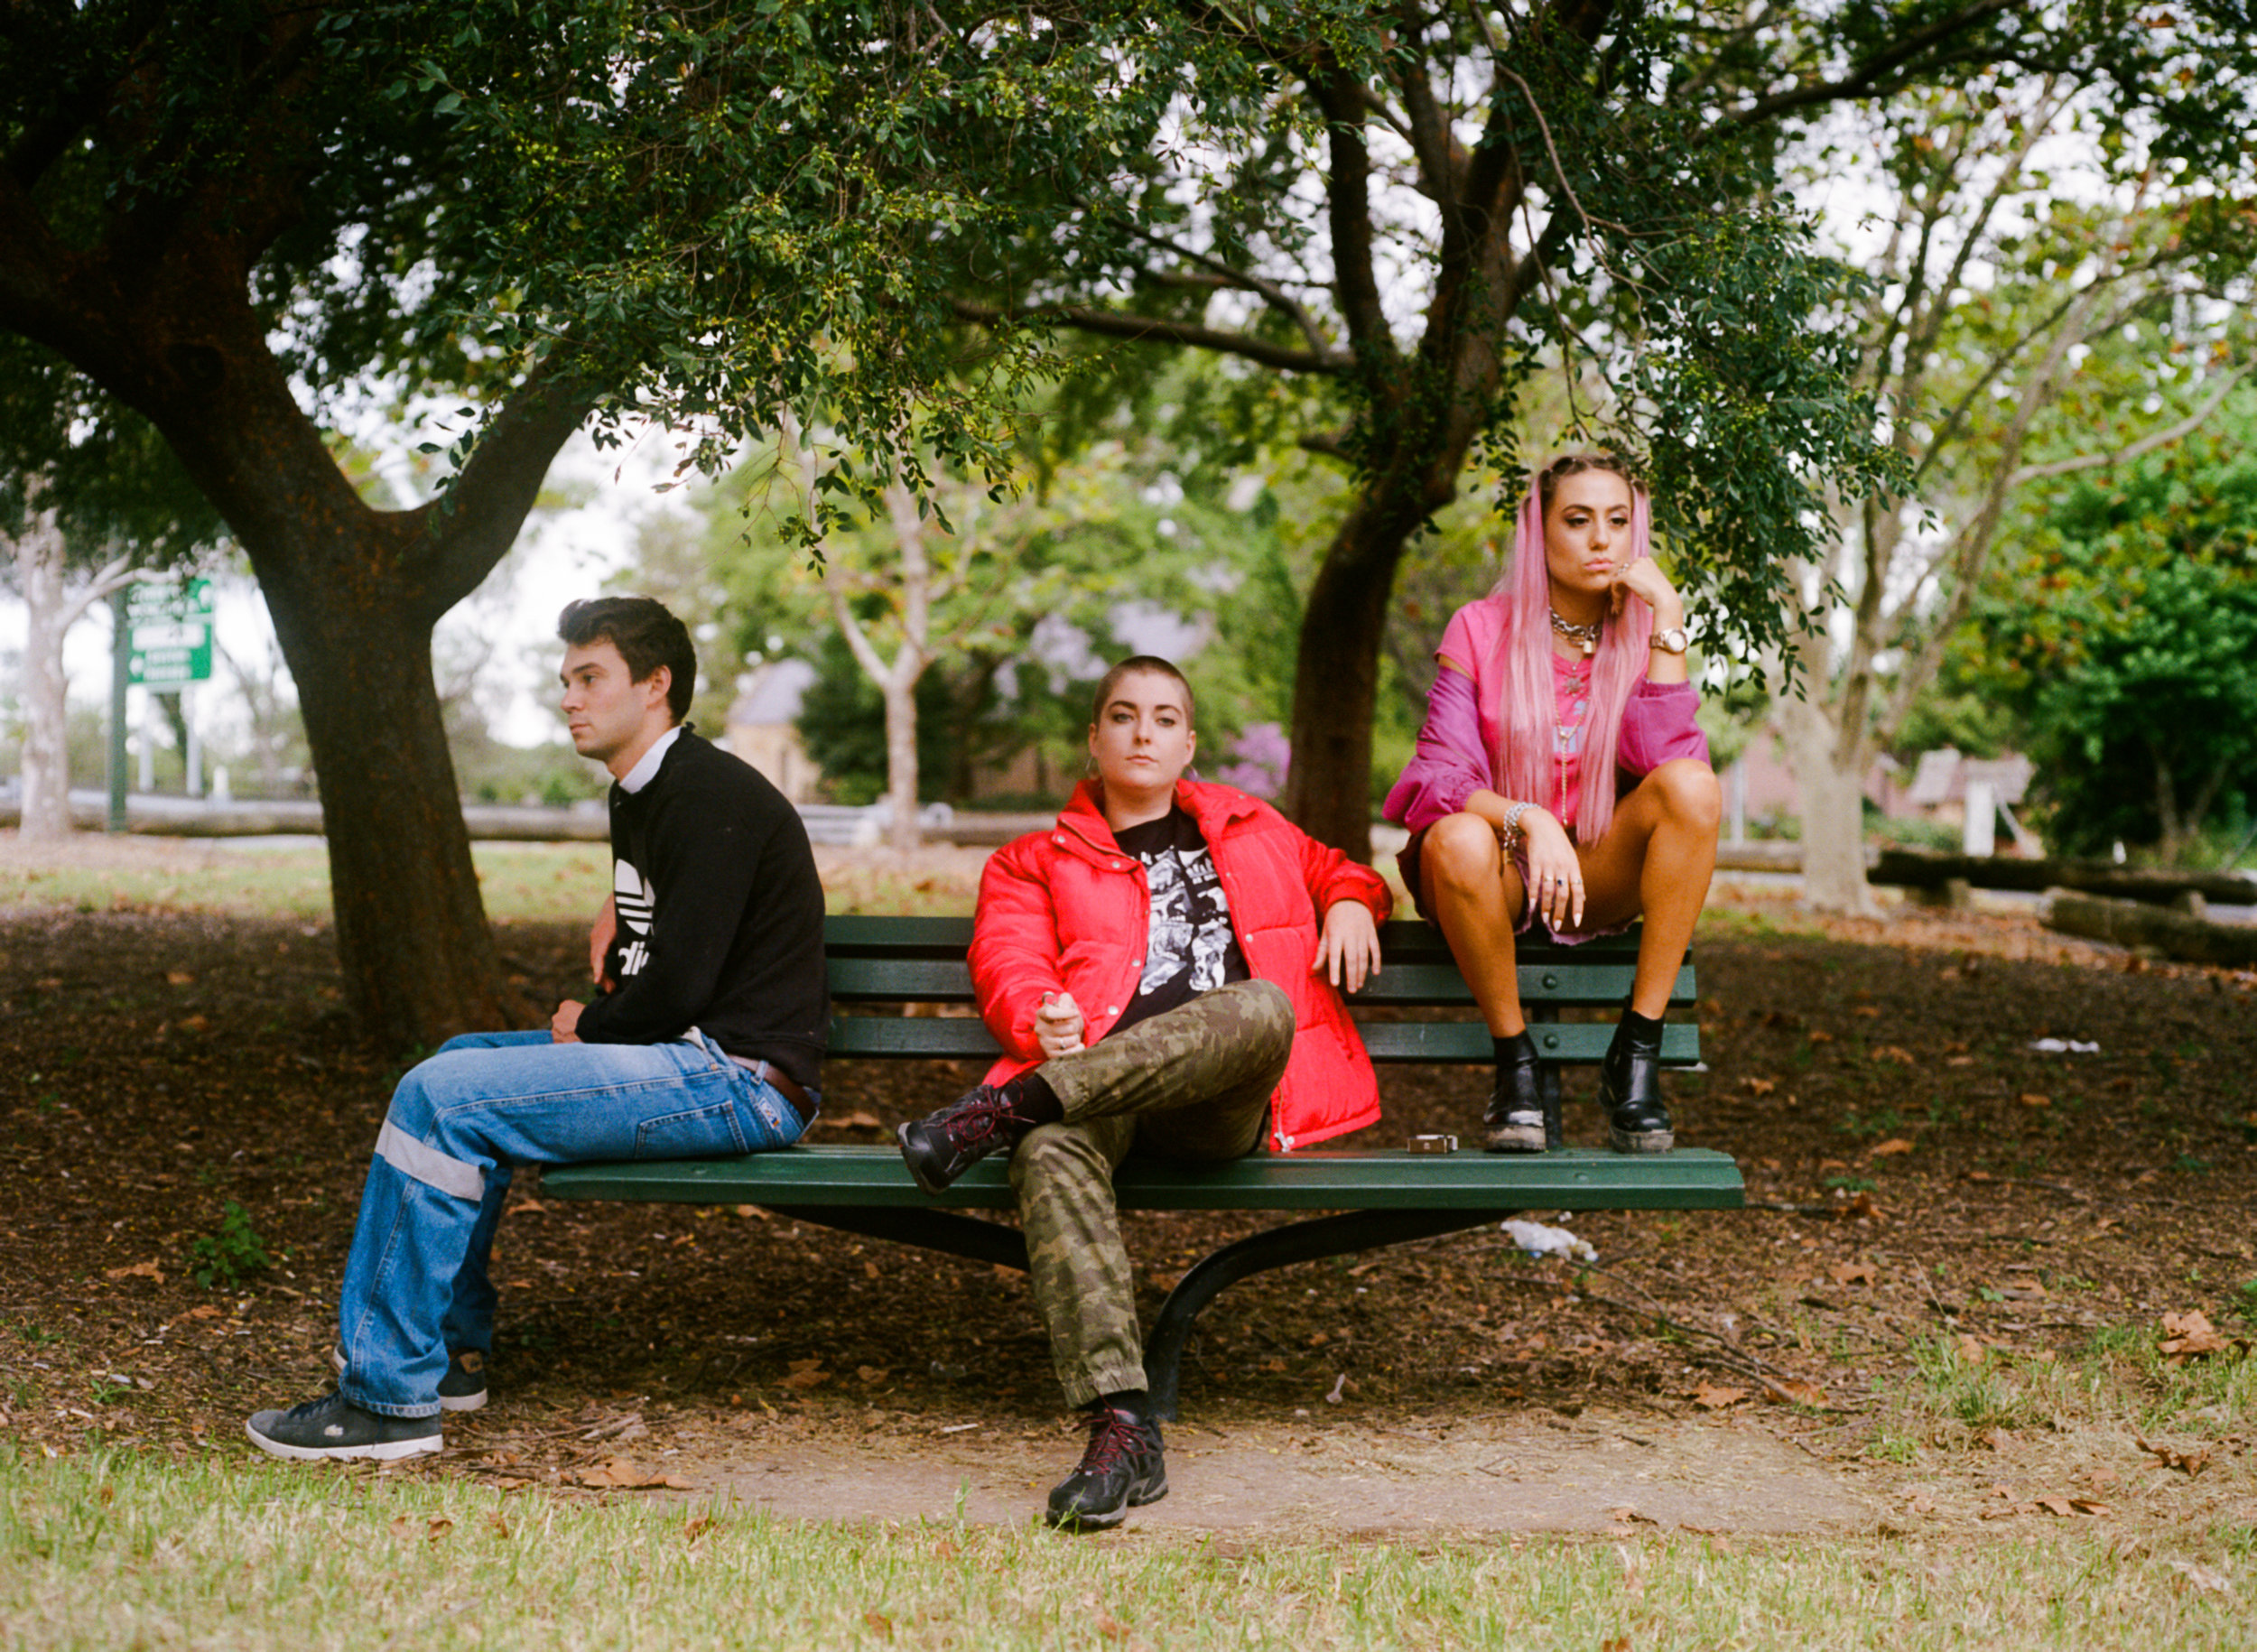 Luke (played by Chris Rowe), Beth (played by Sophie Peppernell) and Holly (played by Akala T Newman)